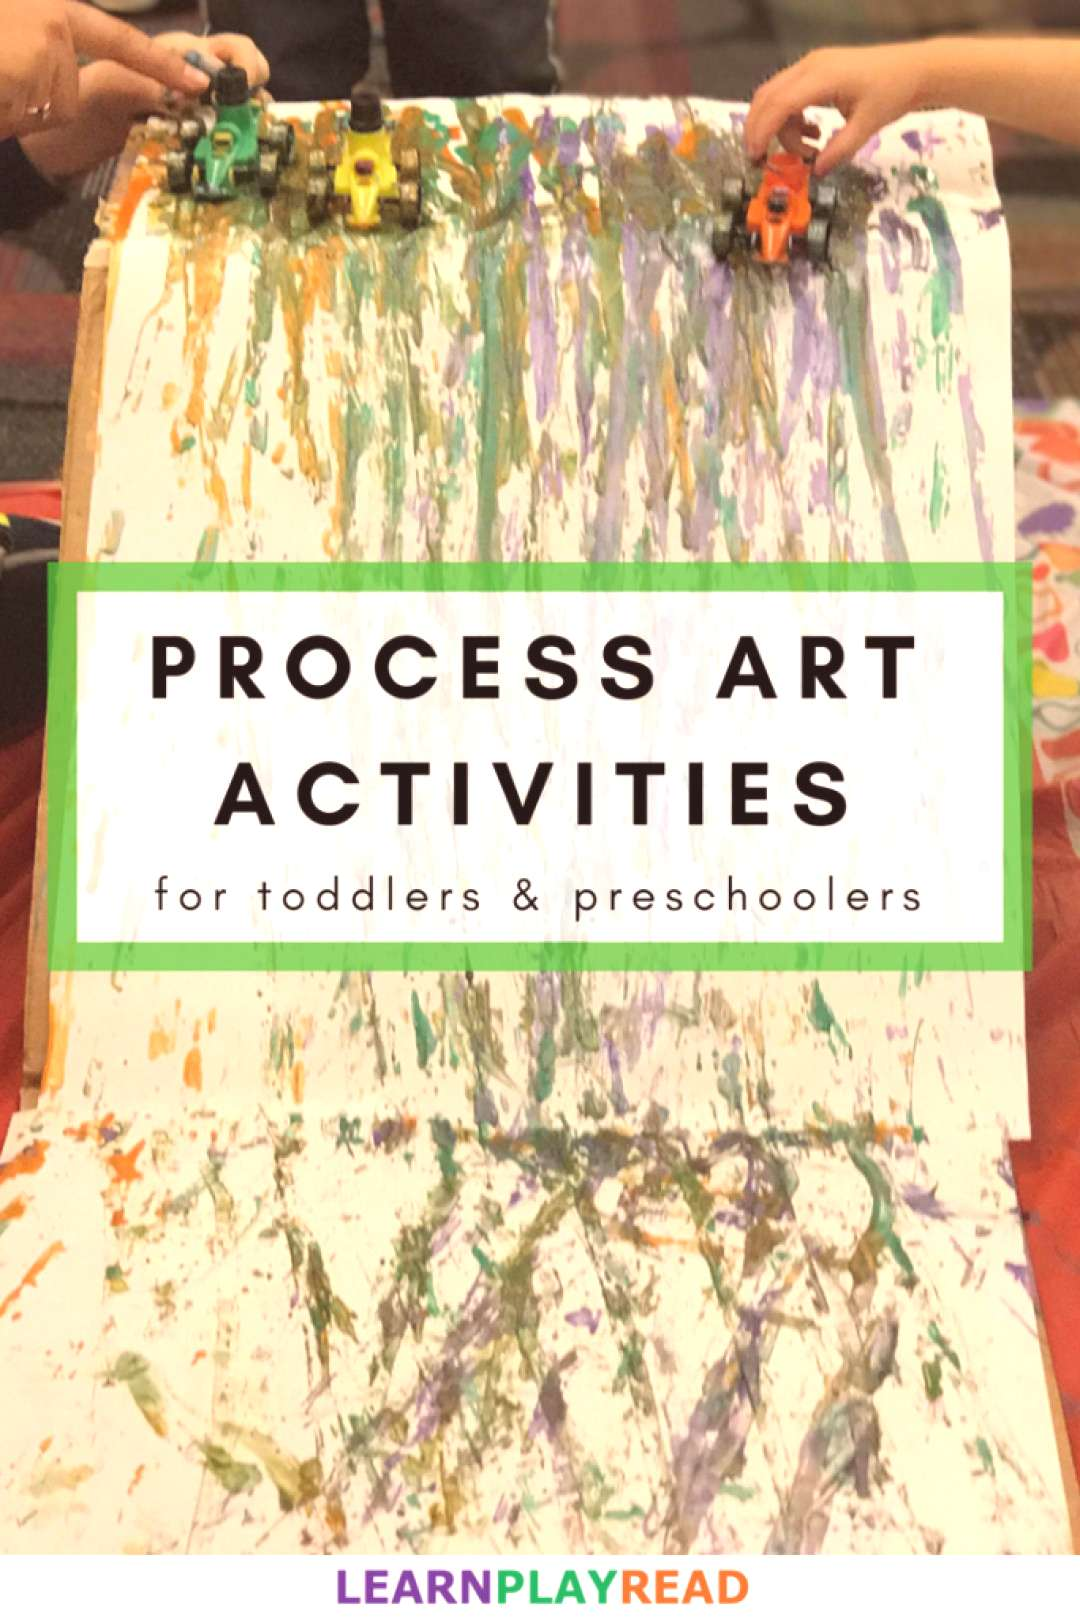 Group Process Art Activities for Toddlers and Preschoolers